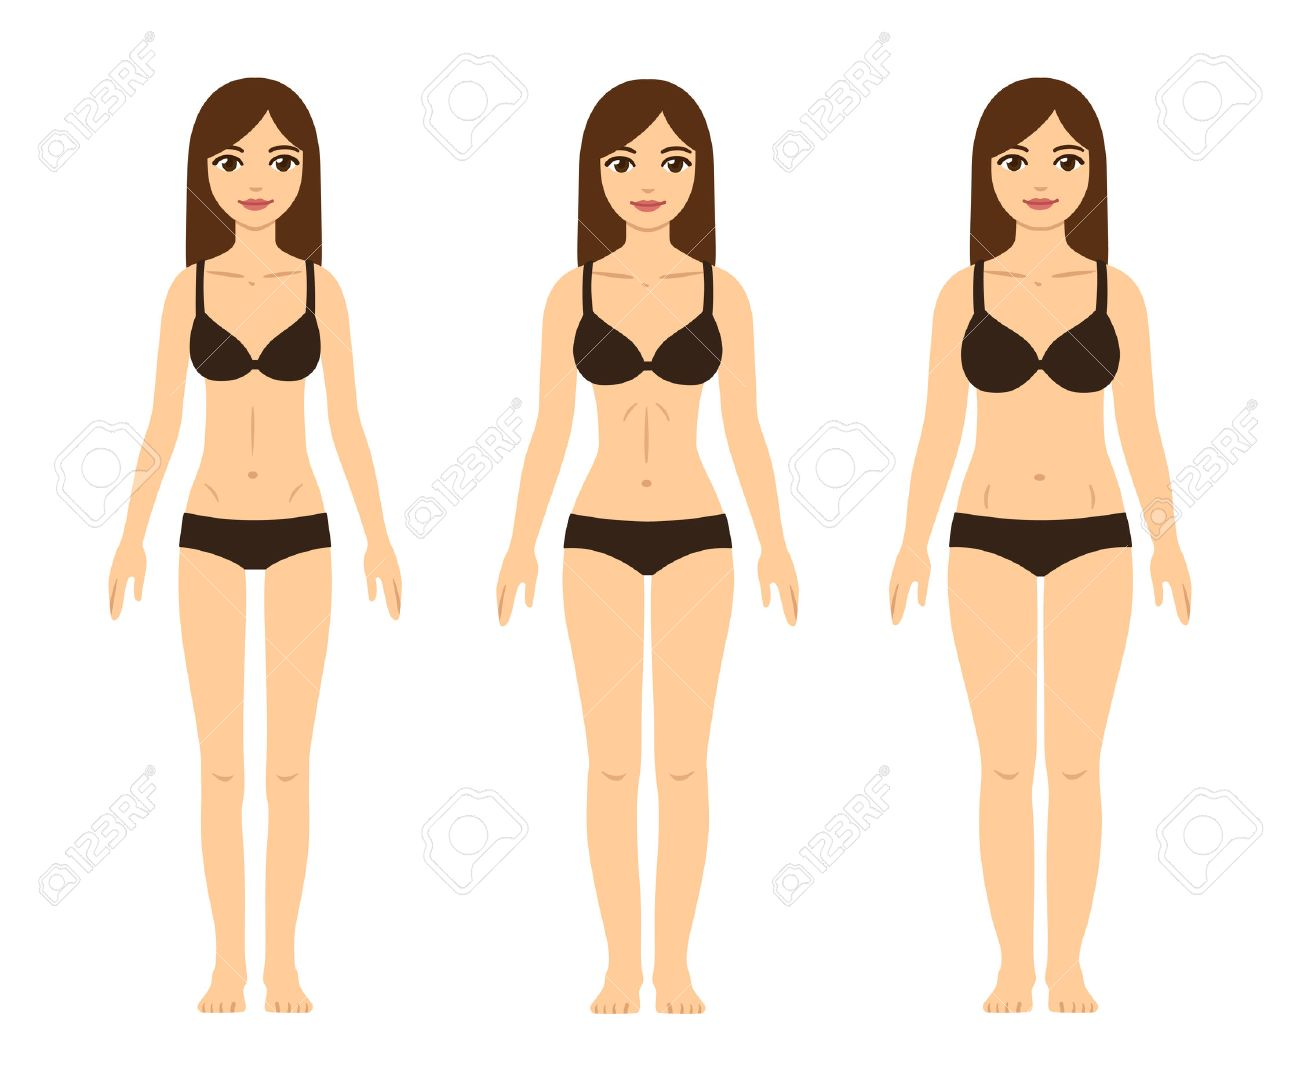 Female Body Types Skinny Underweight Fit Hourglass Figureand